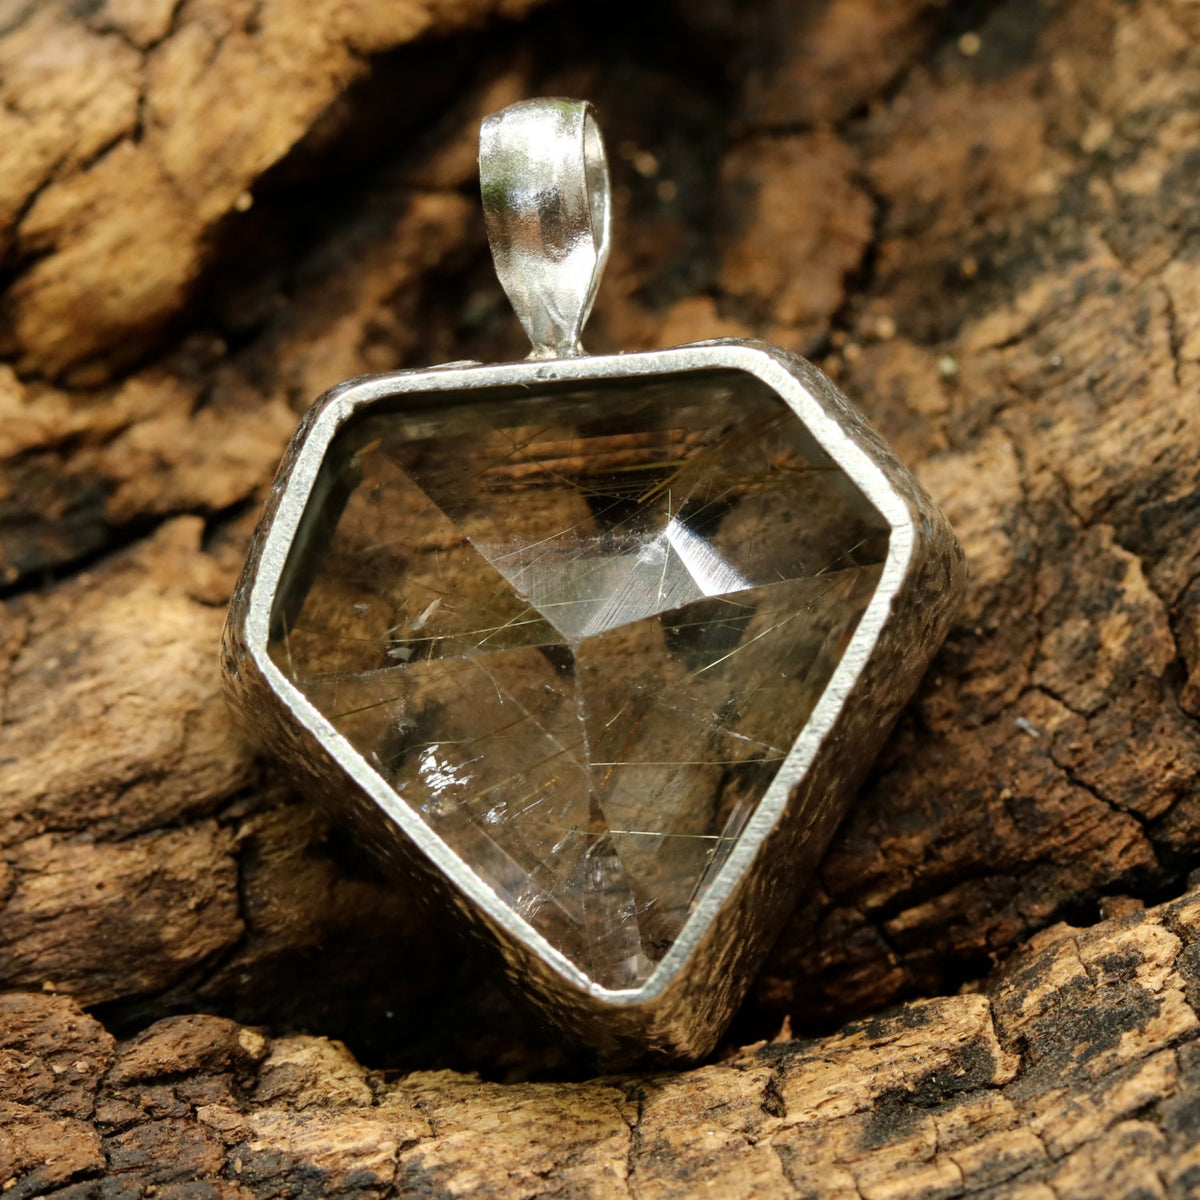 Rutilited quartz in shield faceted pendant in silver bezel setting with polished silver accent prongs